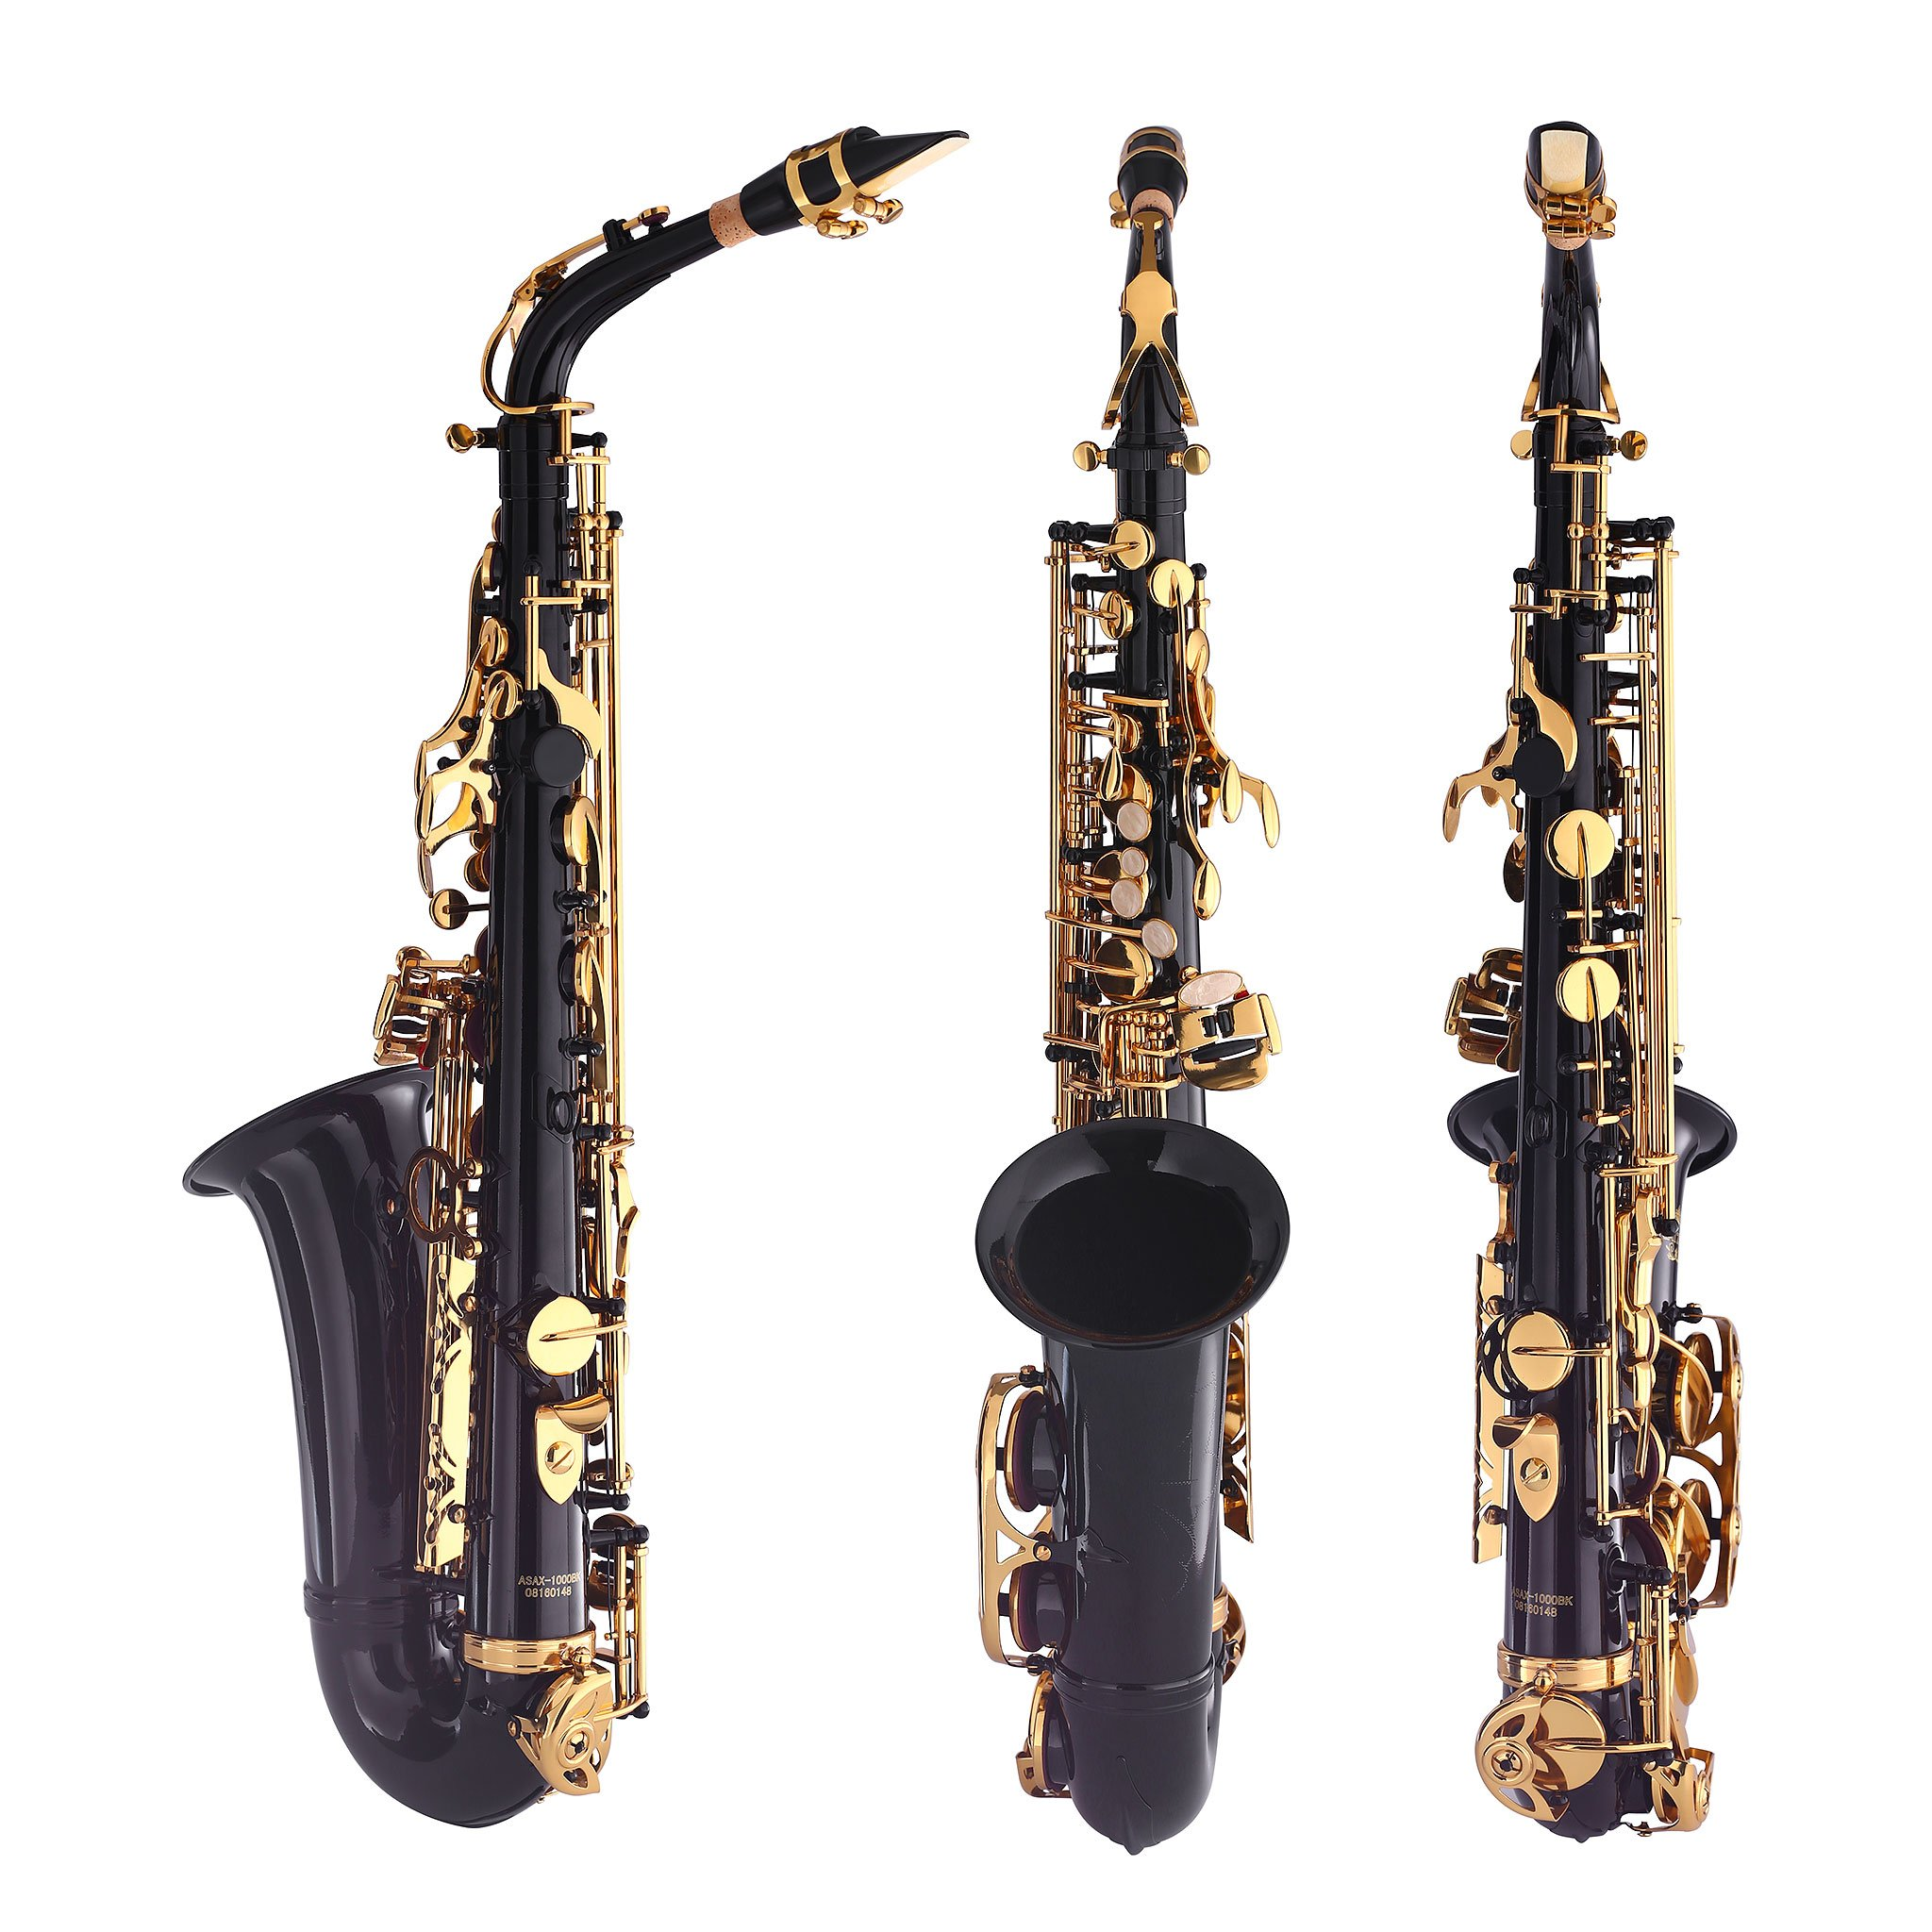 Kaizer Alto Saxophone E Flat Eb Black Lacquer Body Gold Keys 1000 Series Sax Includes Case Mouthpiece and Accessories ASAX-1000BKGK by Kaizer (Image #2)